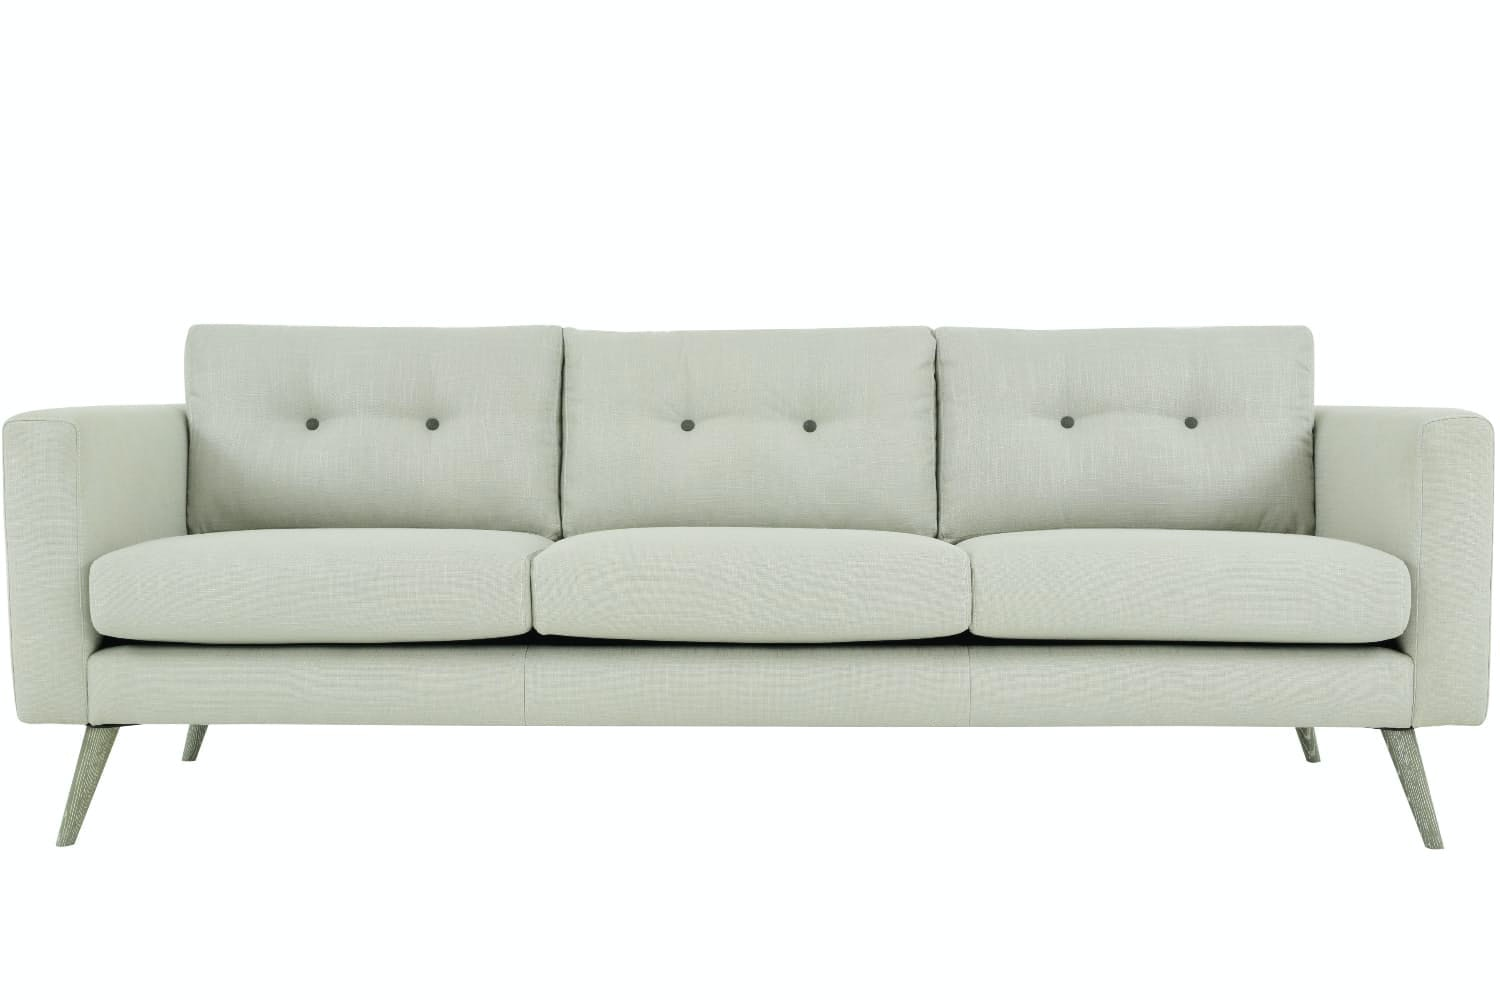 Fable 3 Seater Sofa